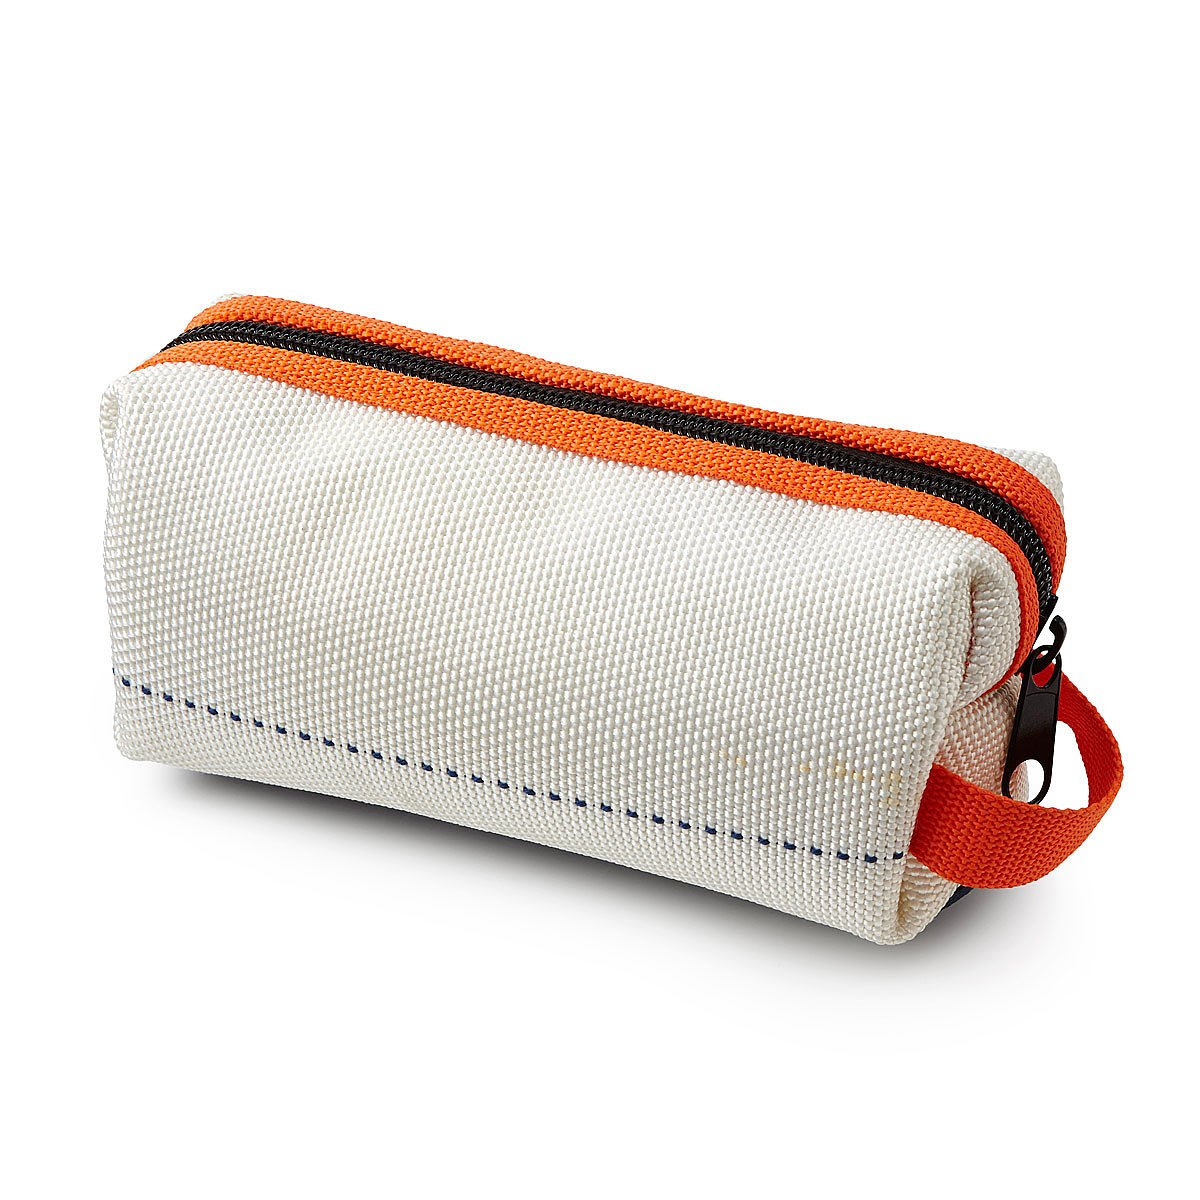 Recycled bunker gear bags - Upcycled Firehose Toiletry Bag 1 Thumbnail